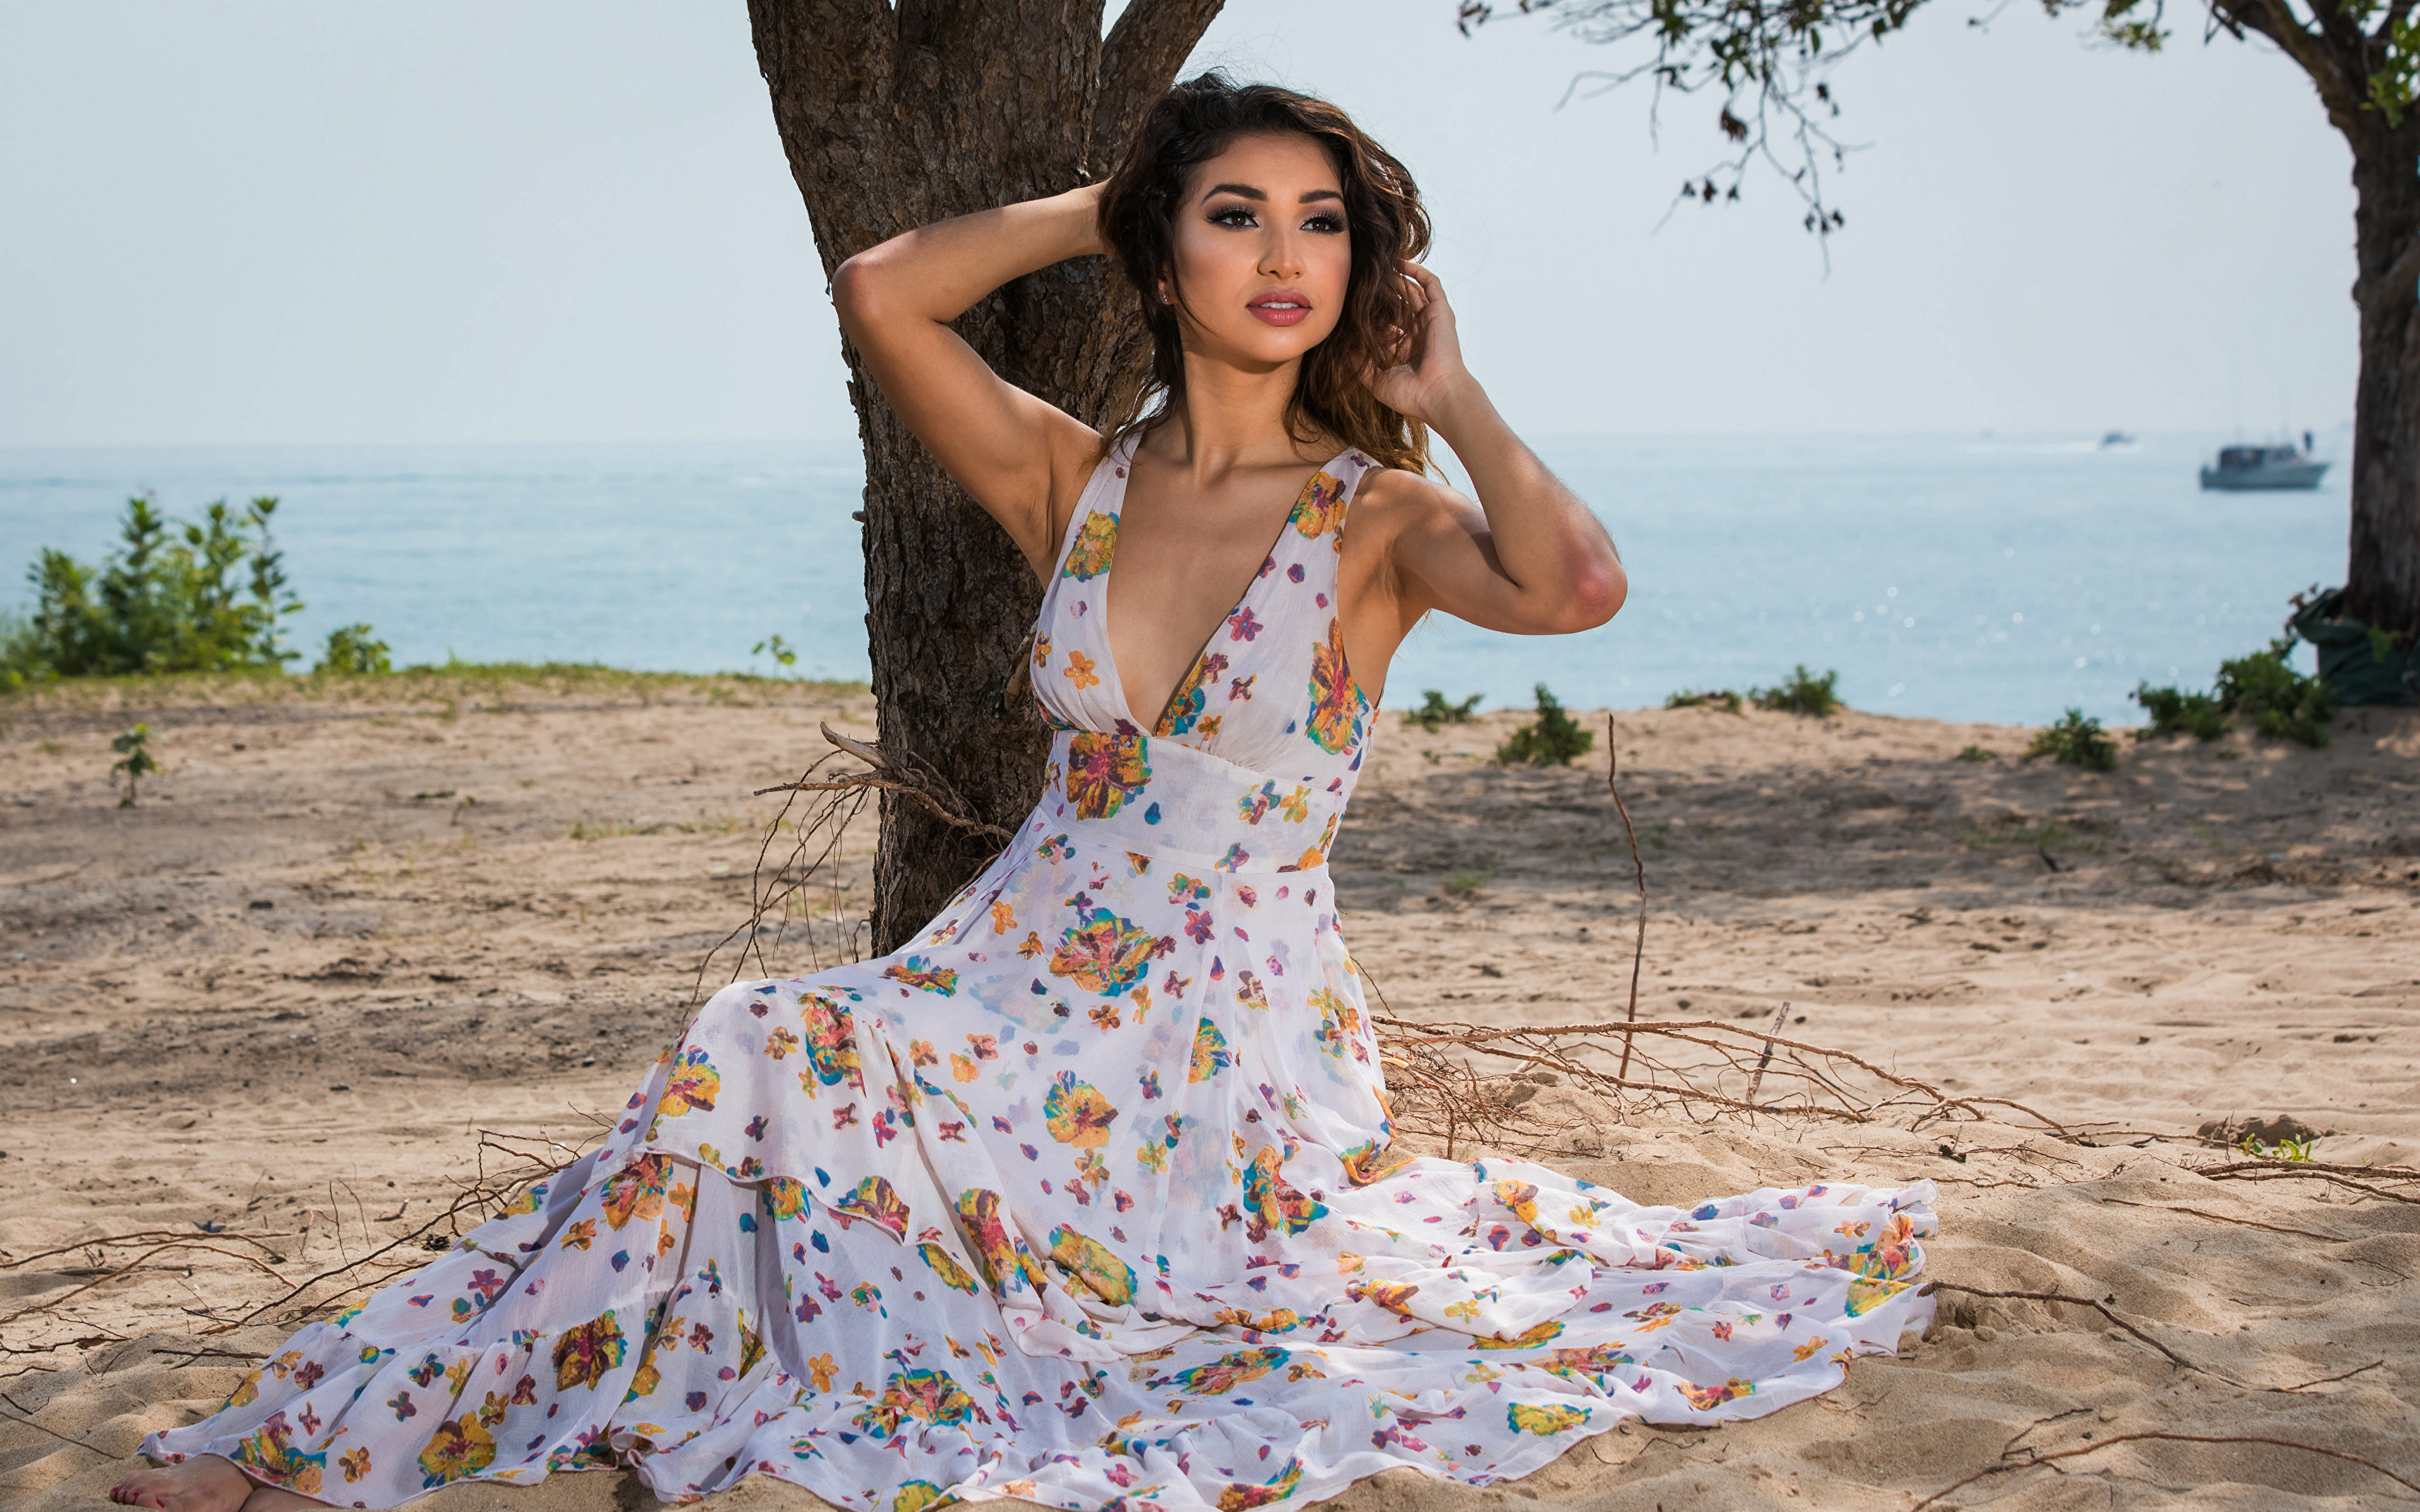 Images Isis Serano Pose young woman Sand Sitting Staring Dress 3840x2400 posing Girls female sit Glance gown frock